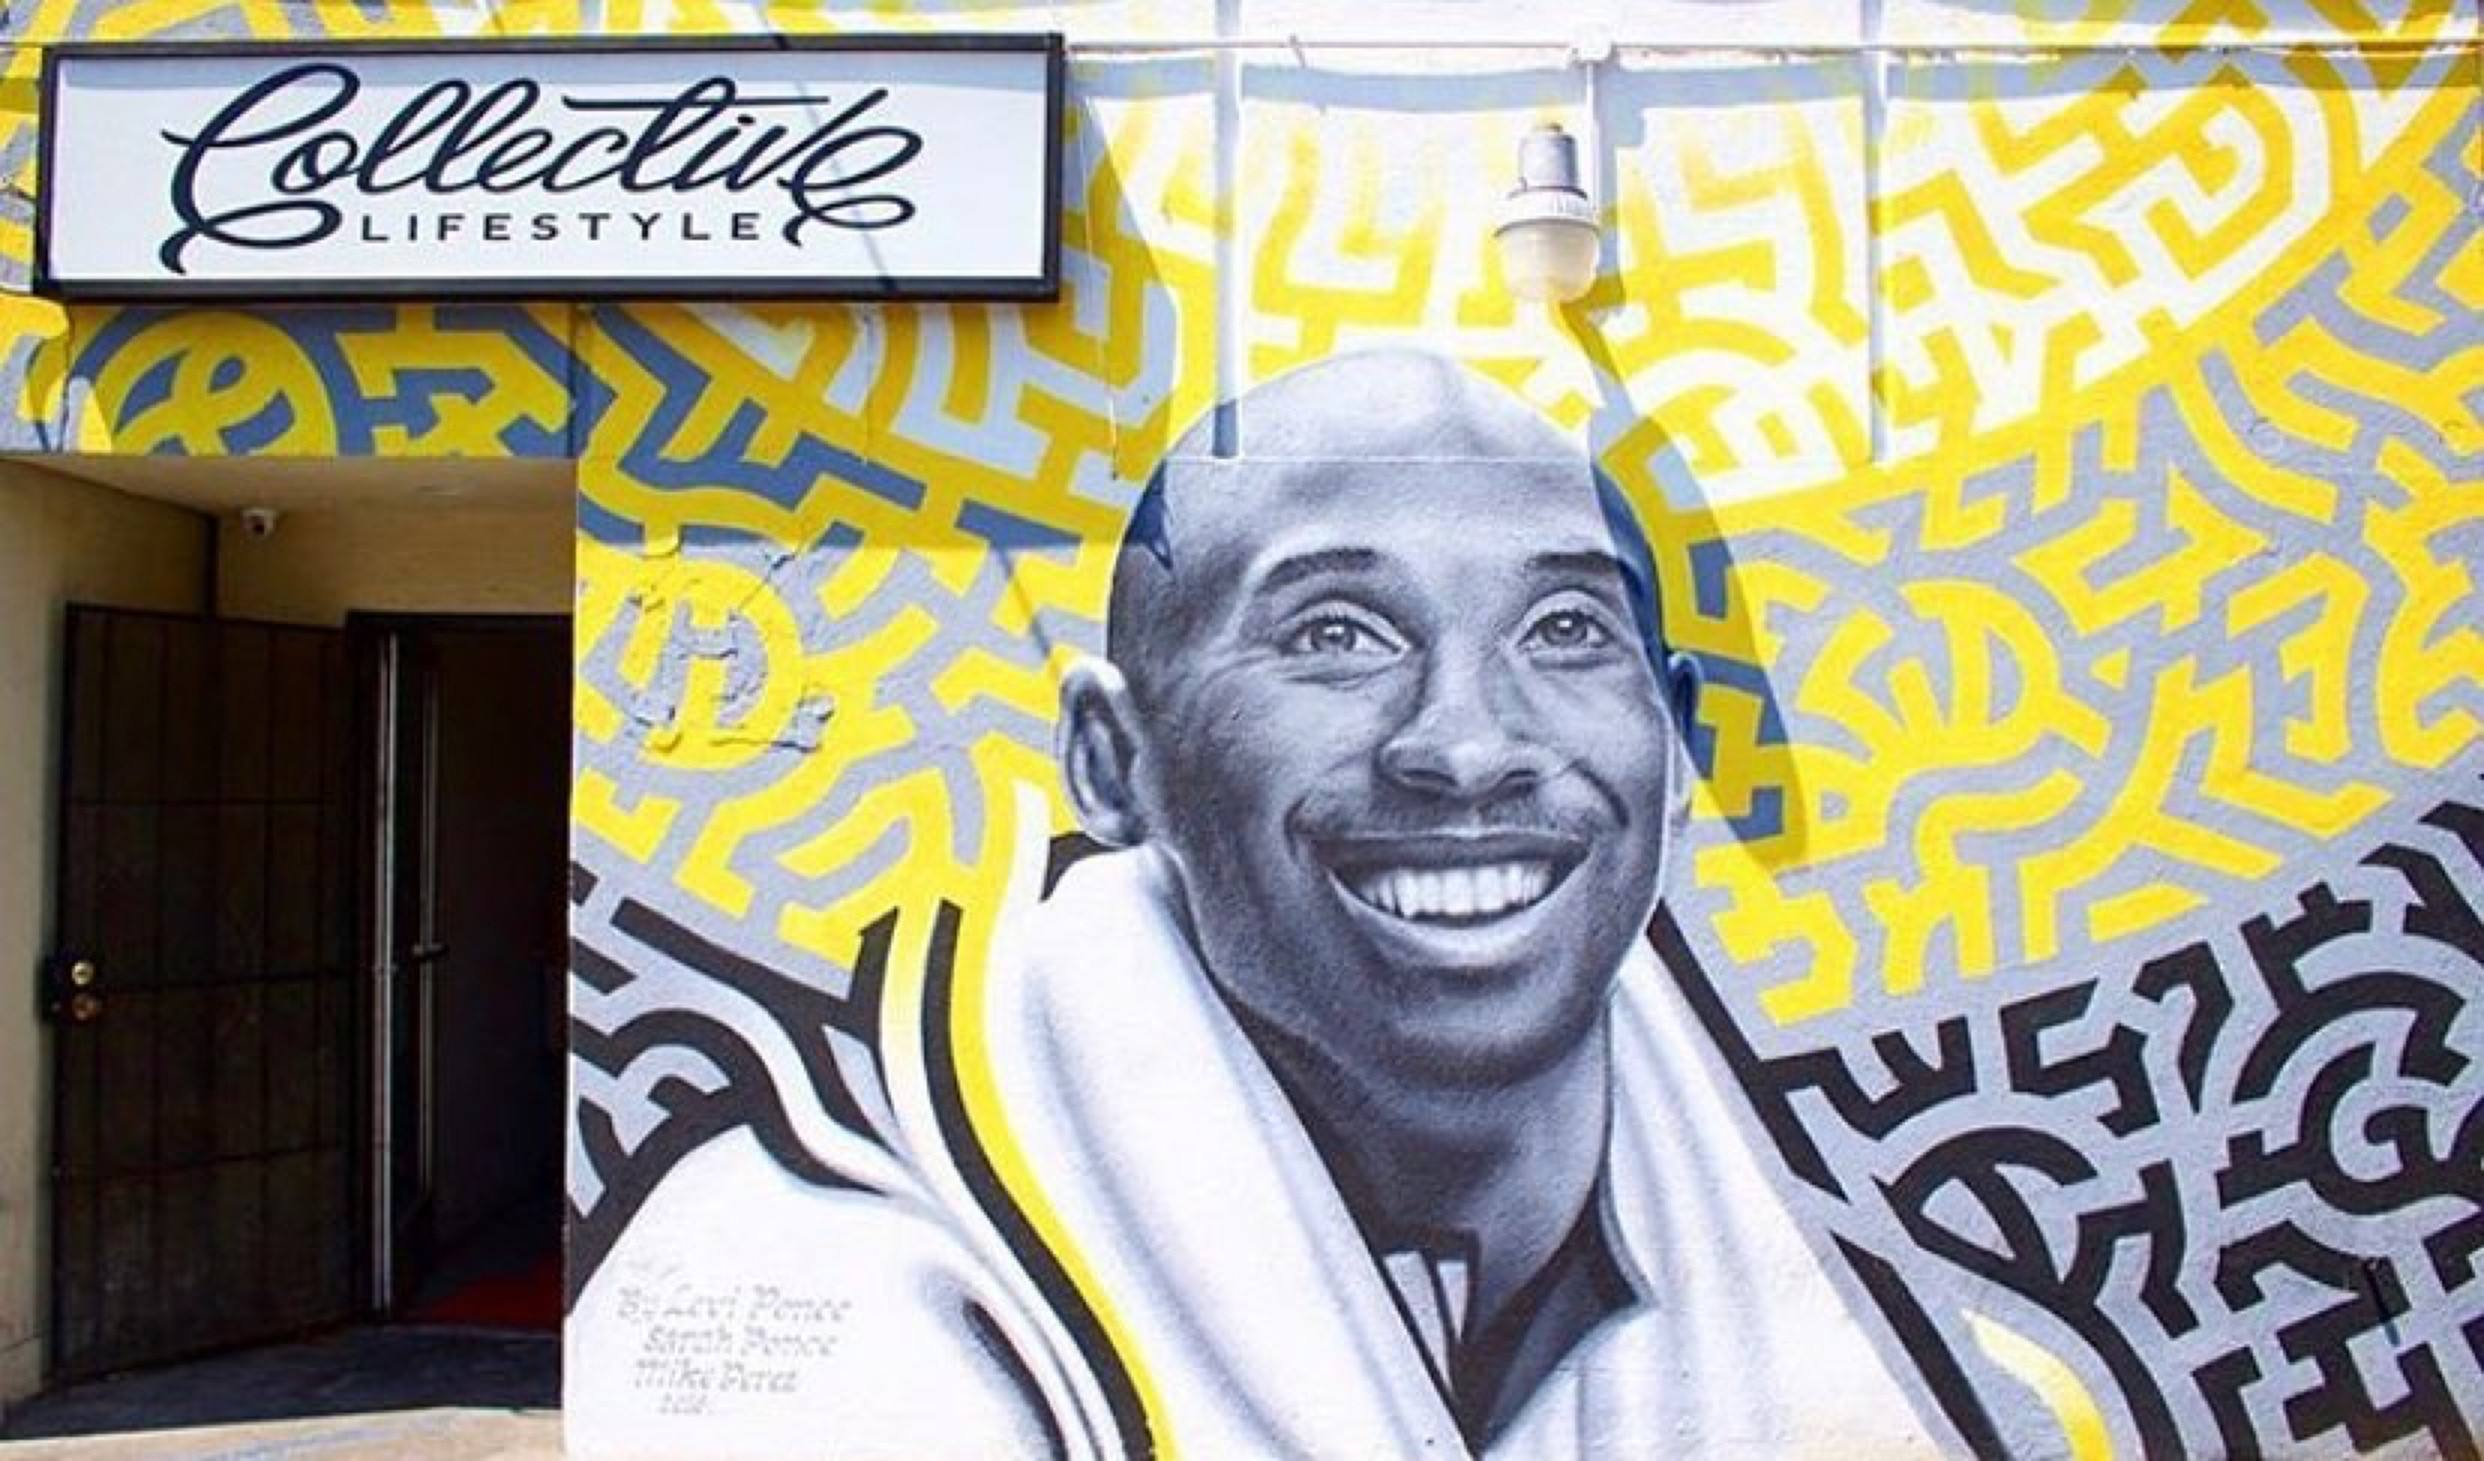 Kobe Bryant mural by Levi Ponce at Collective Lifestyle in Northridge